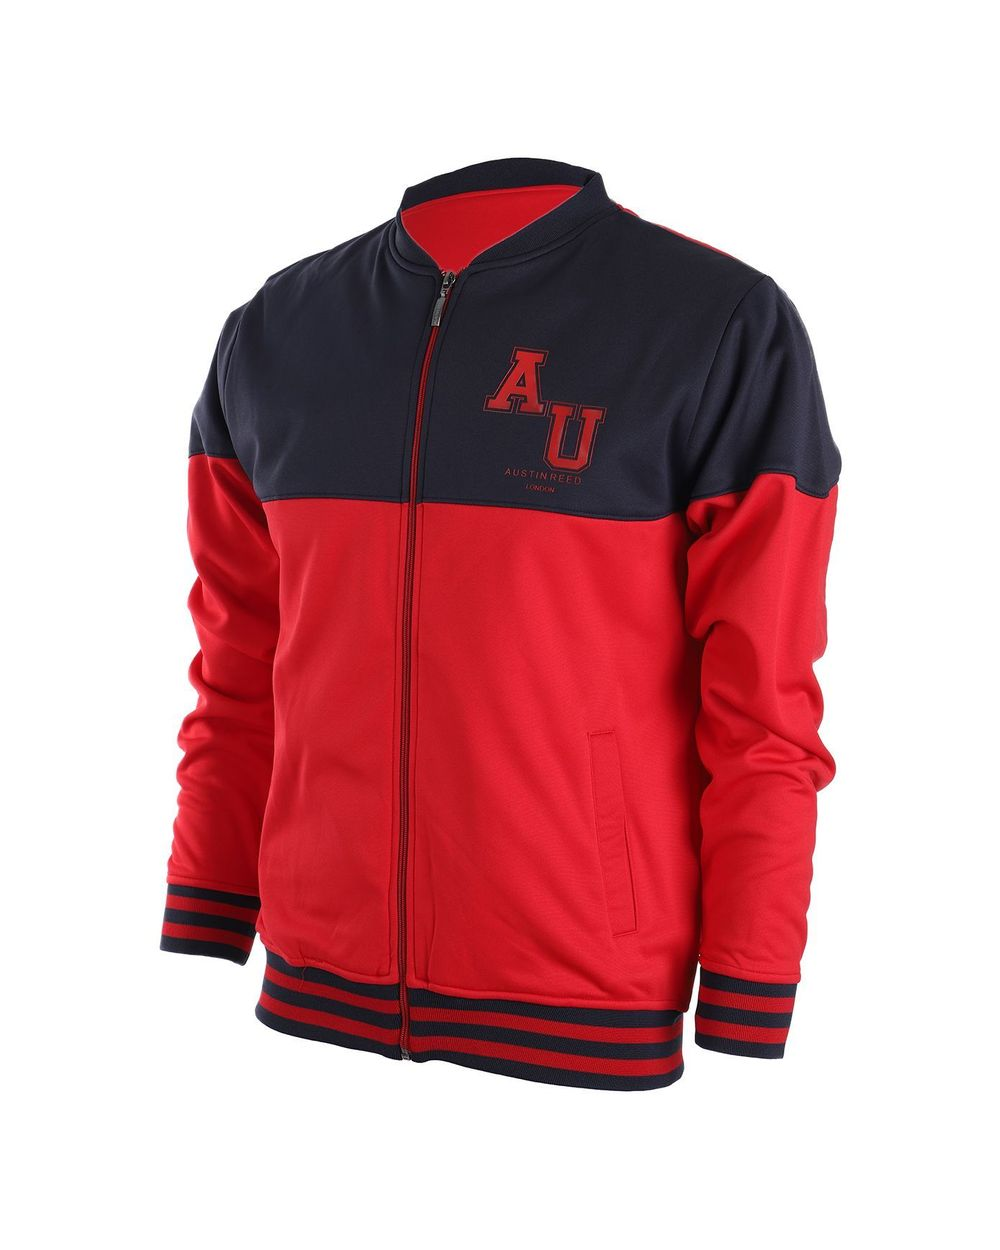 Austin Reed Men Navy Blue Red Colorblocked Track Jacket L Buy Clothing Online Best Price And Offers Ksa Hnak Com